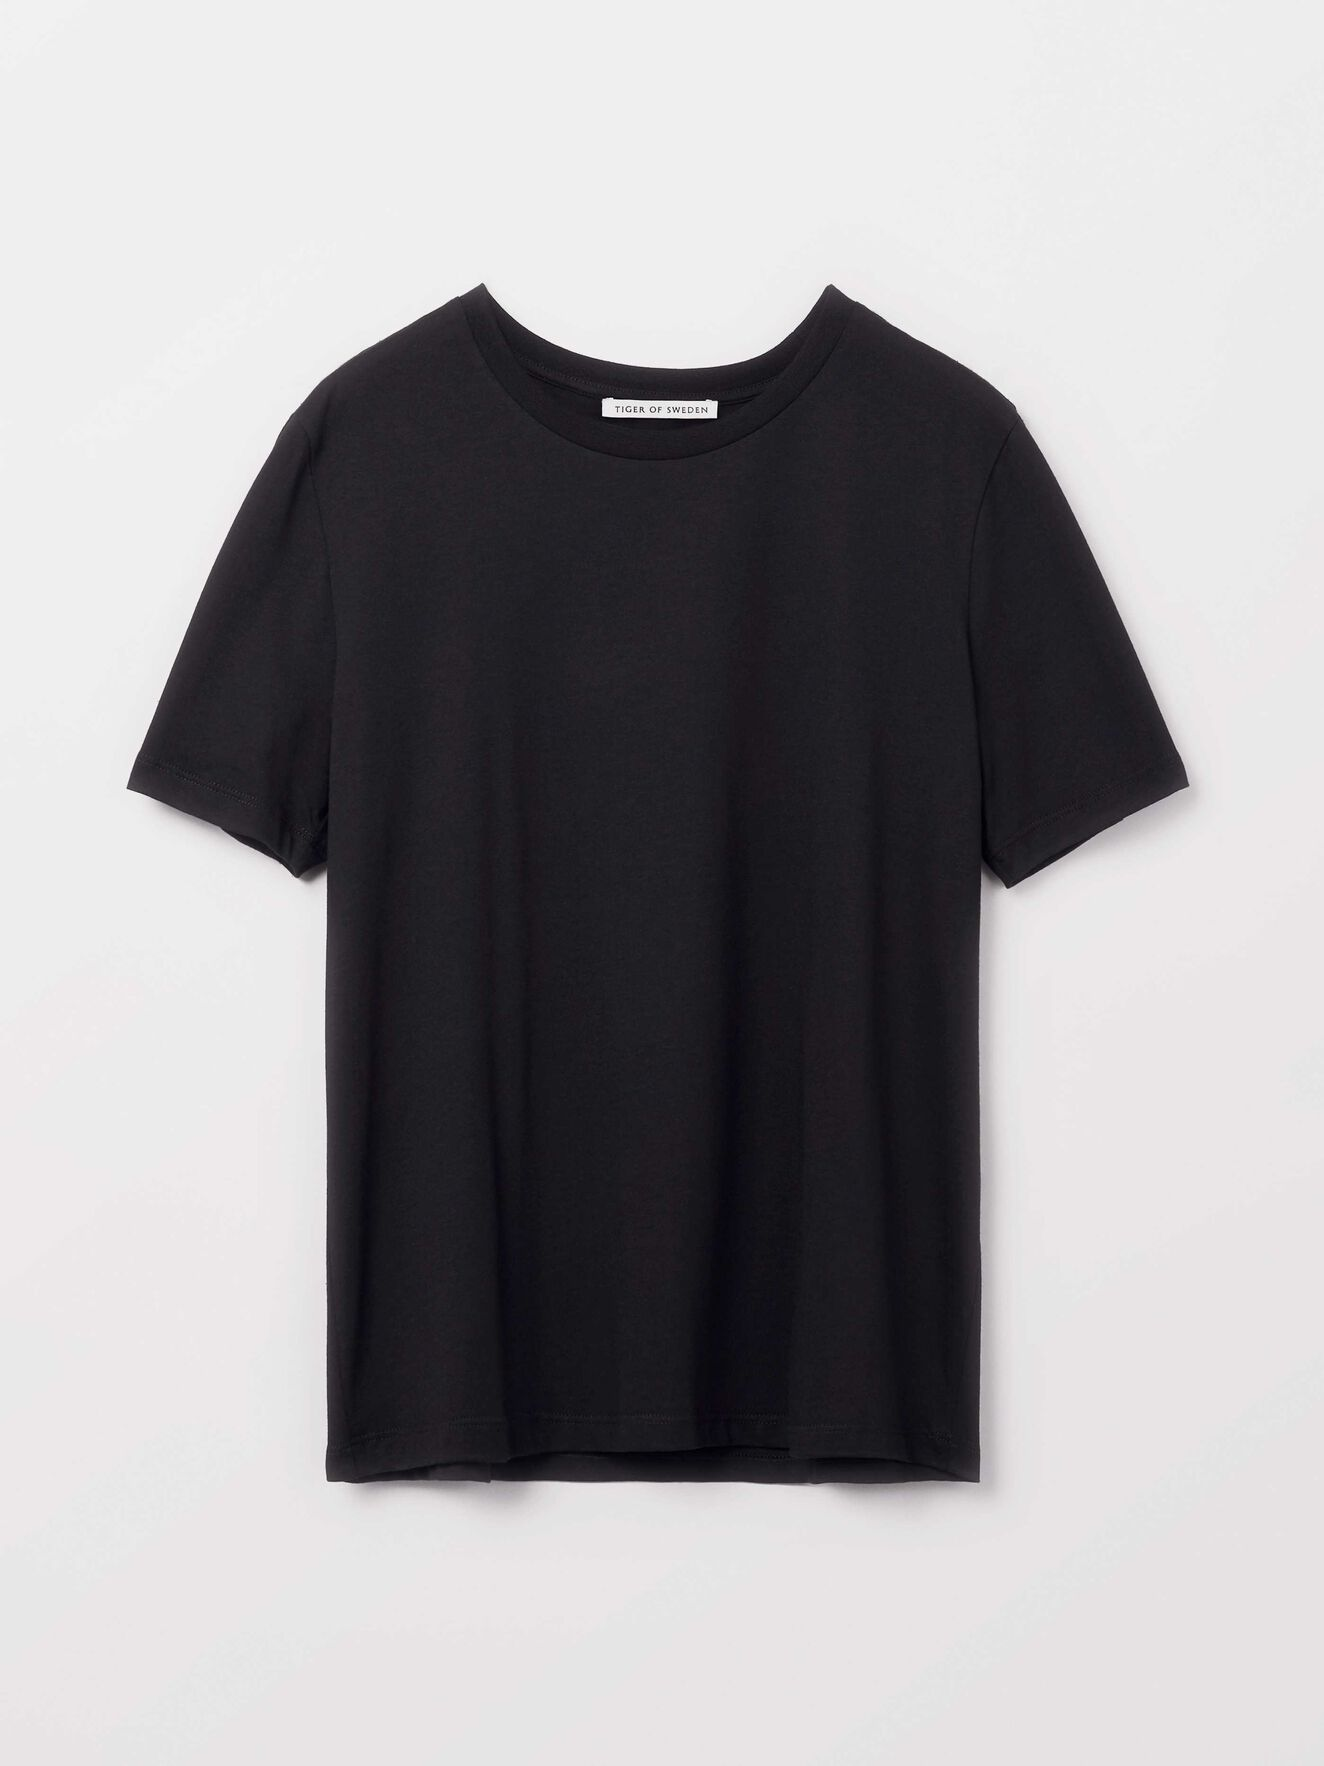 Deira T-Shirt in Black from Tiger of Sweden